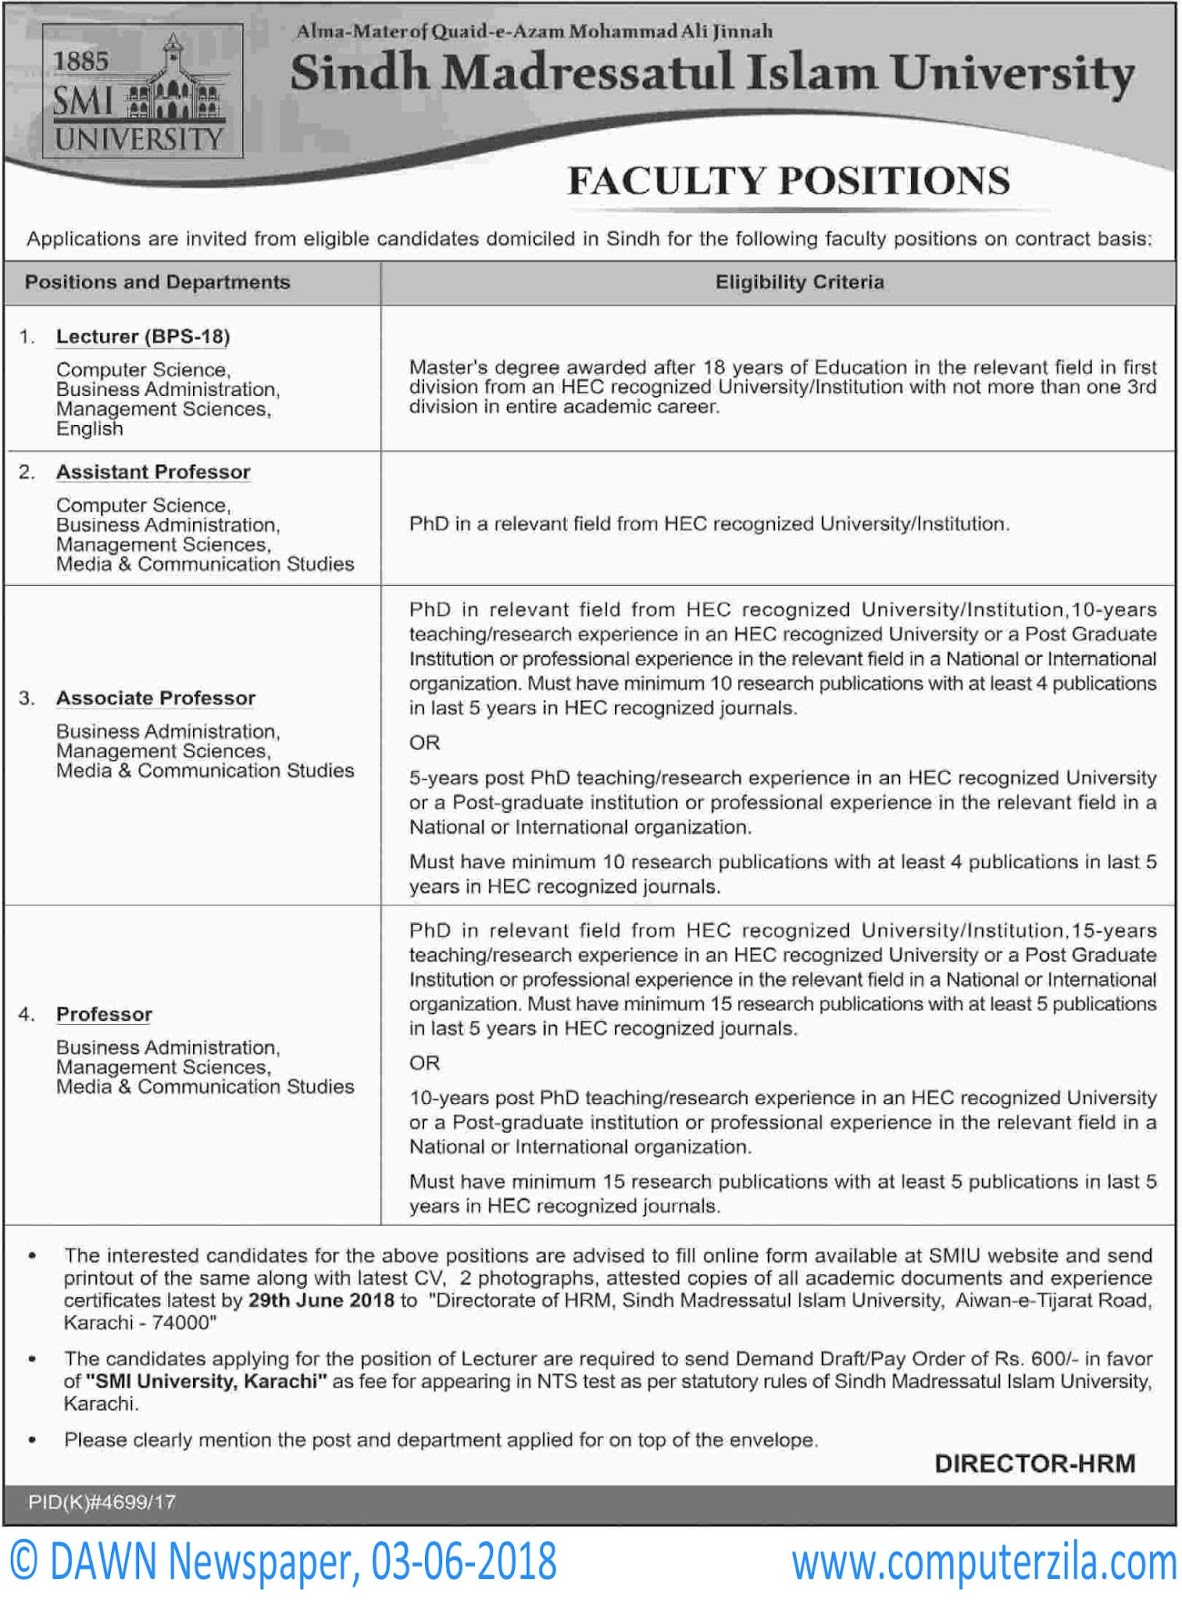 Faculty Positions at Sindh Madressatul Islam University